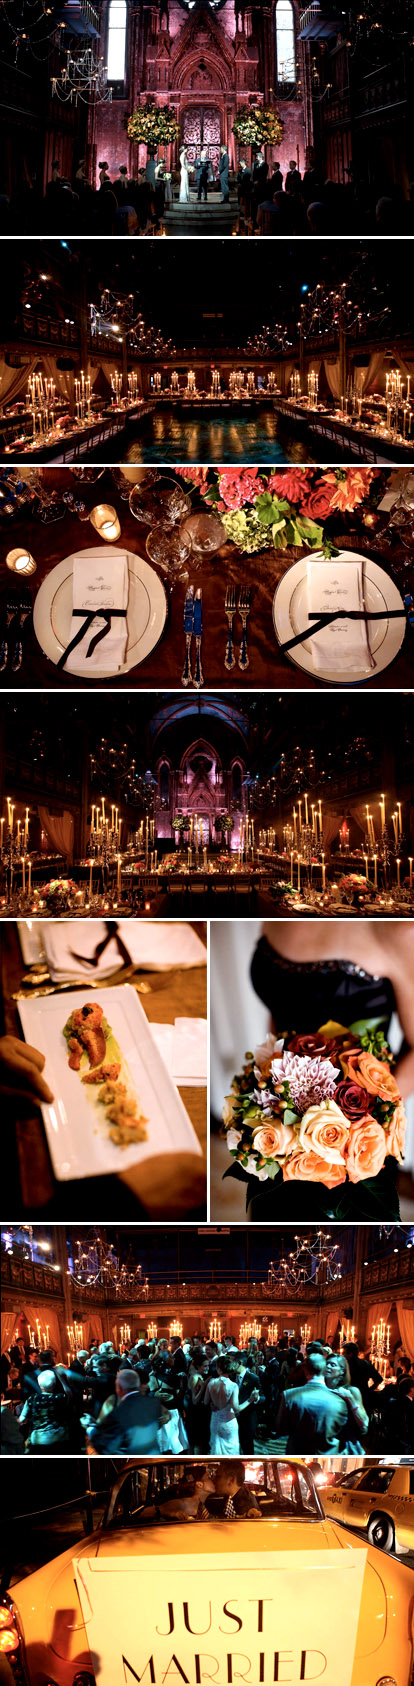 Bohemian glam real wedding downtown New York City in plum, purple, jewel tones and candle light, by Fete